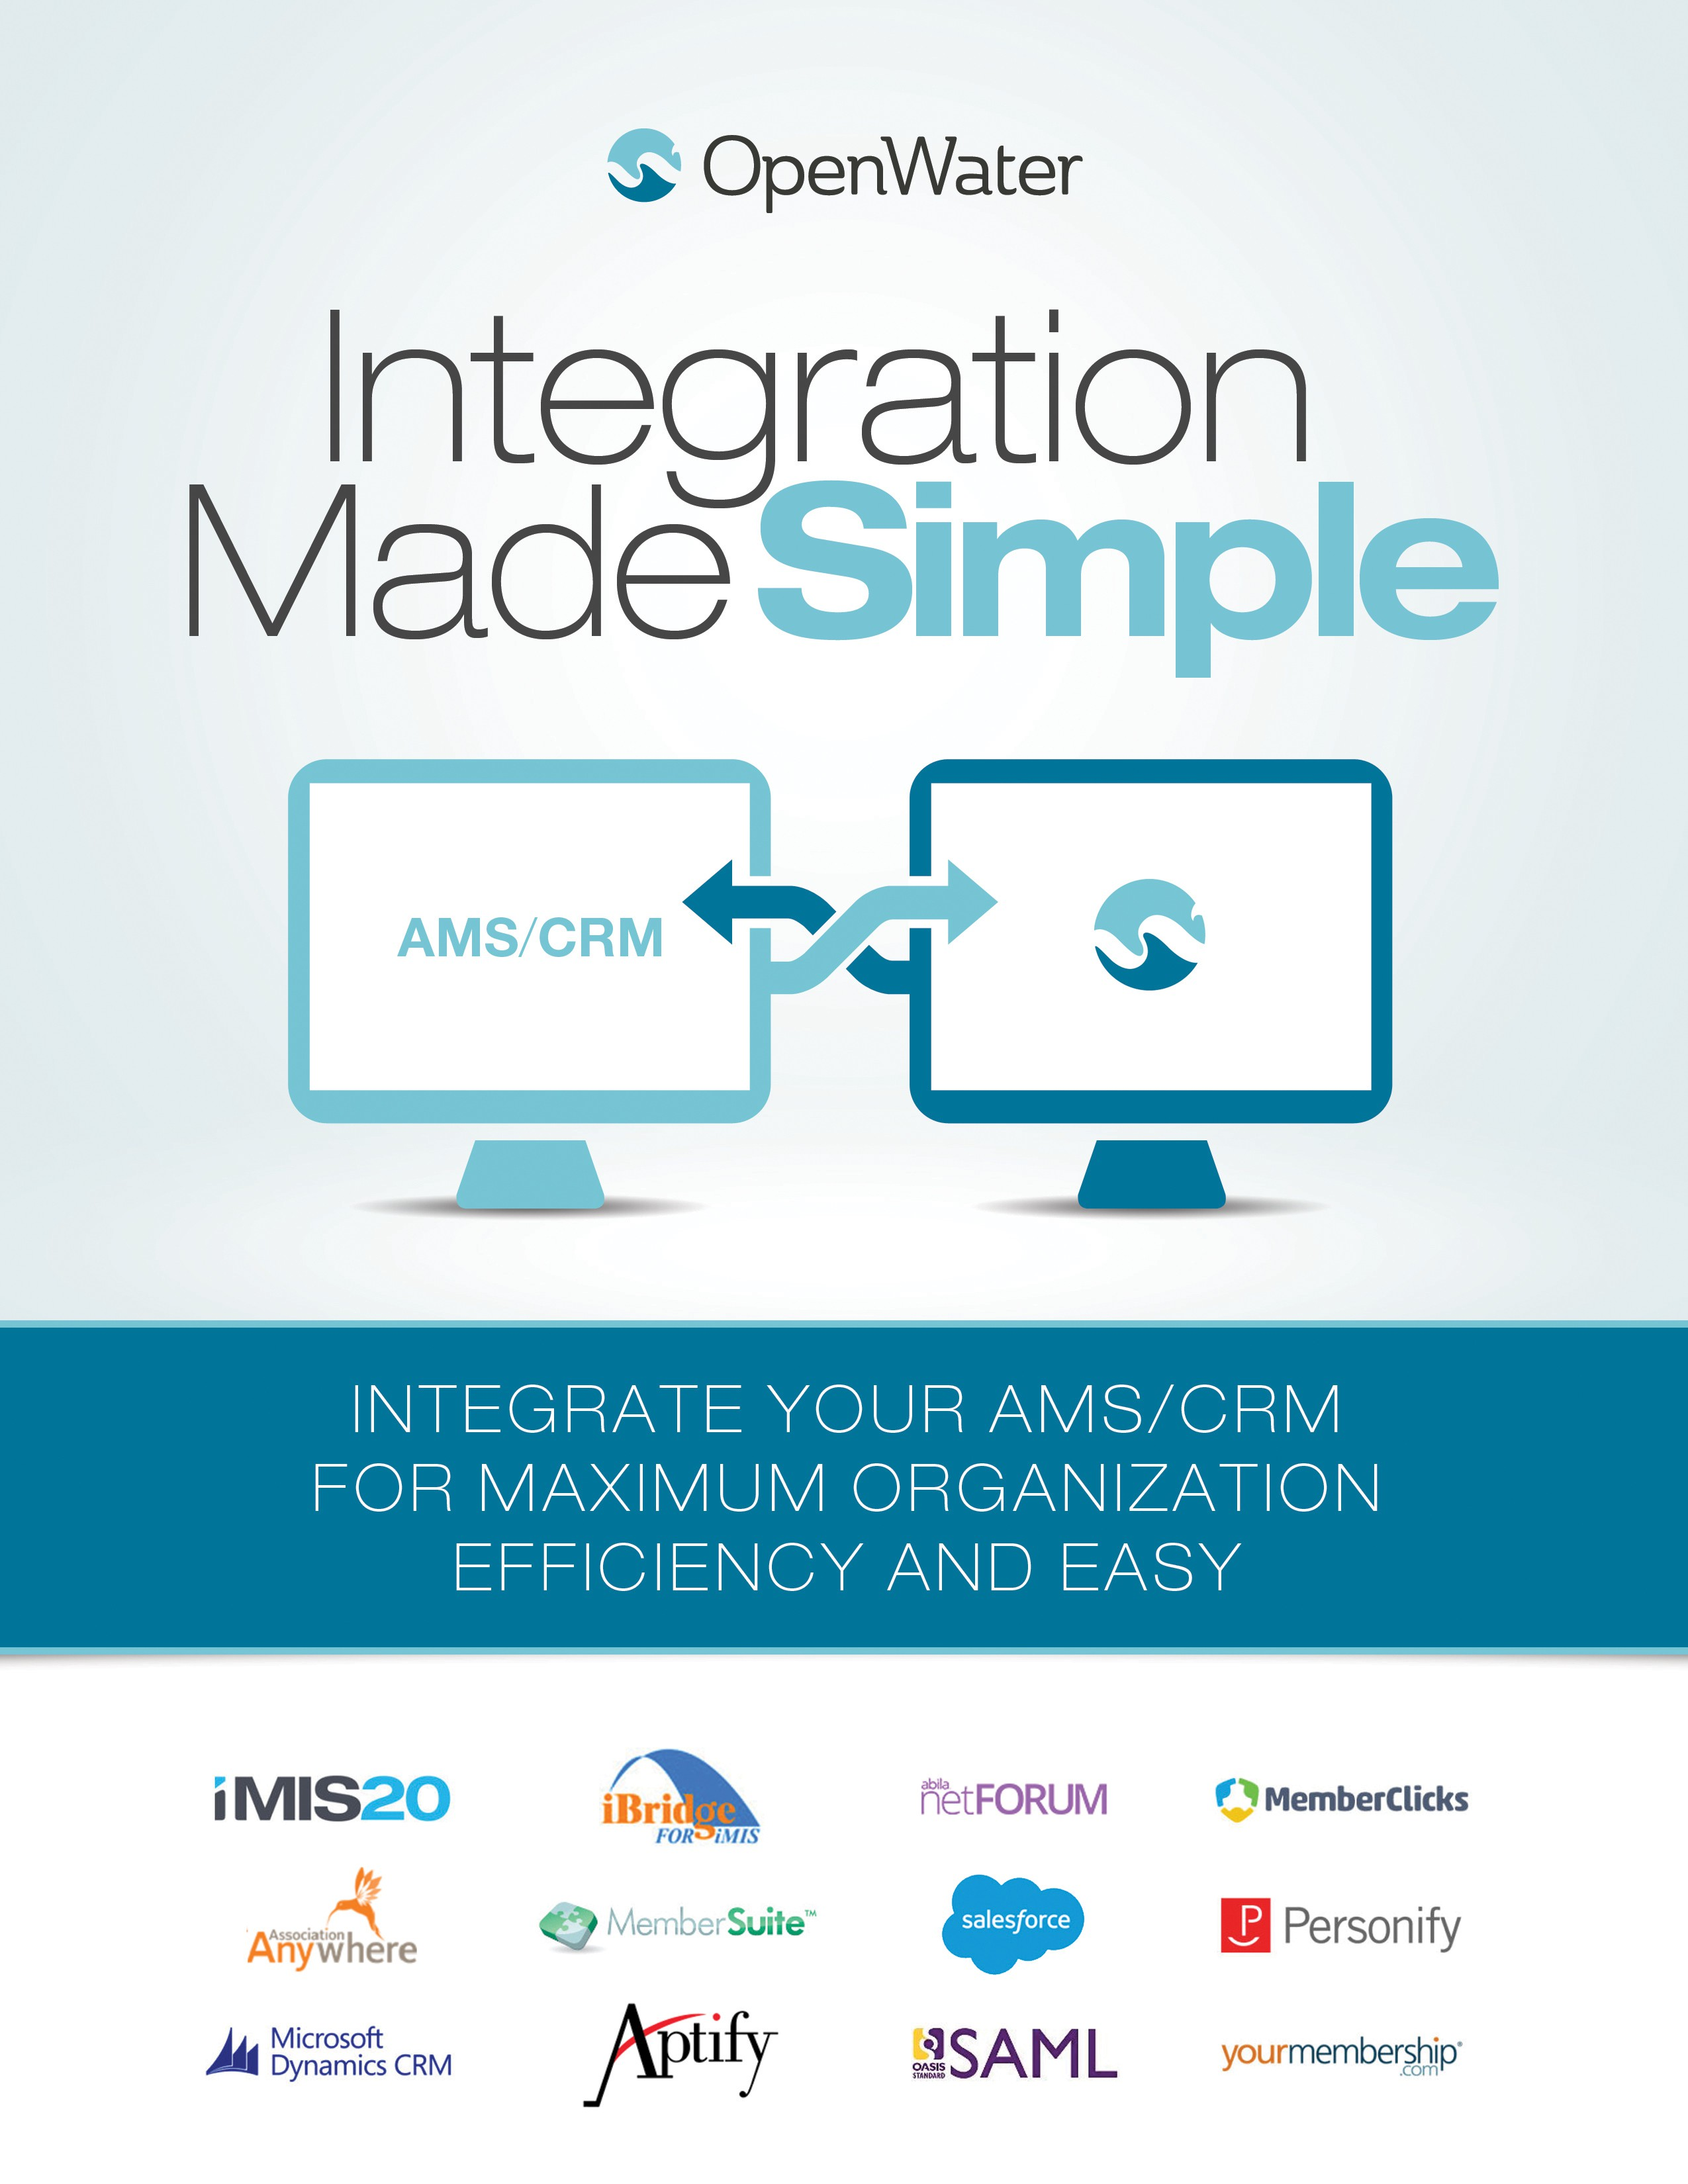 Whitepaper ebook cover design and thumbnail